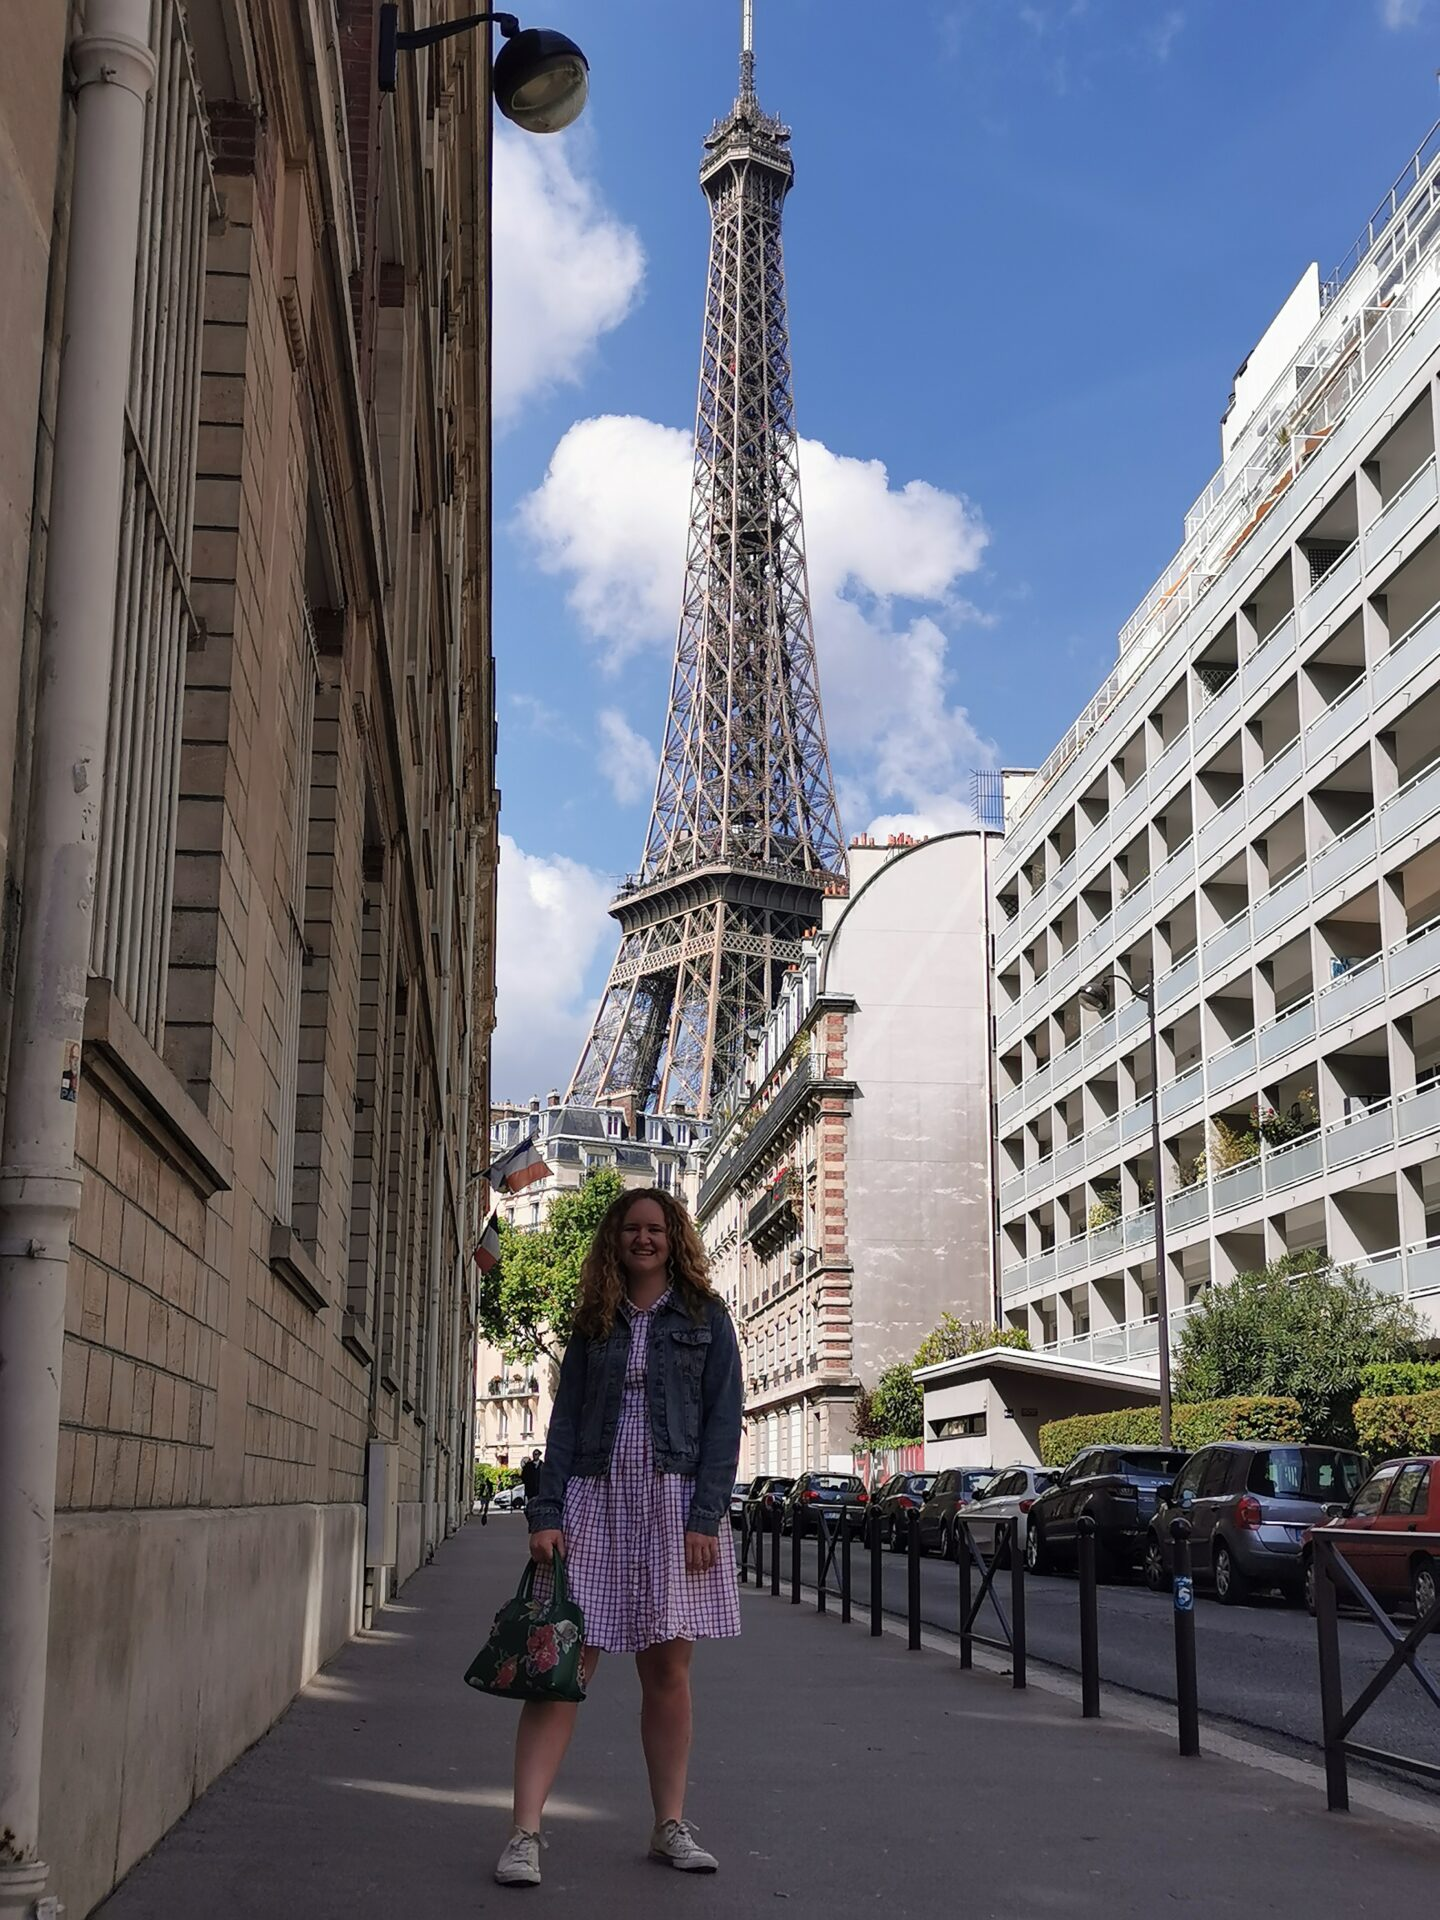 Sophie on a side street in front of the Eiffel Tower